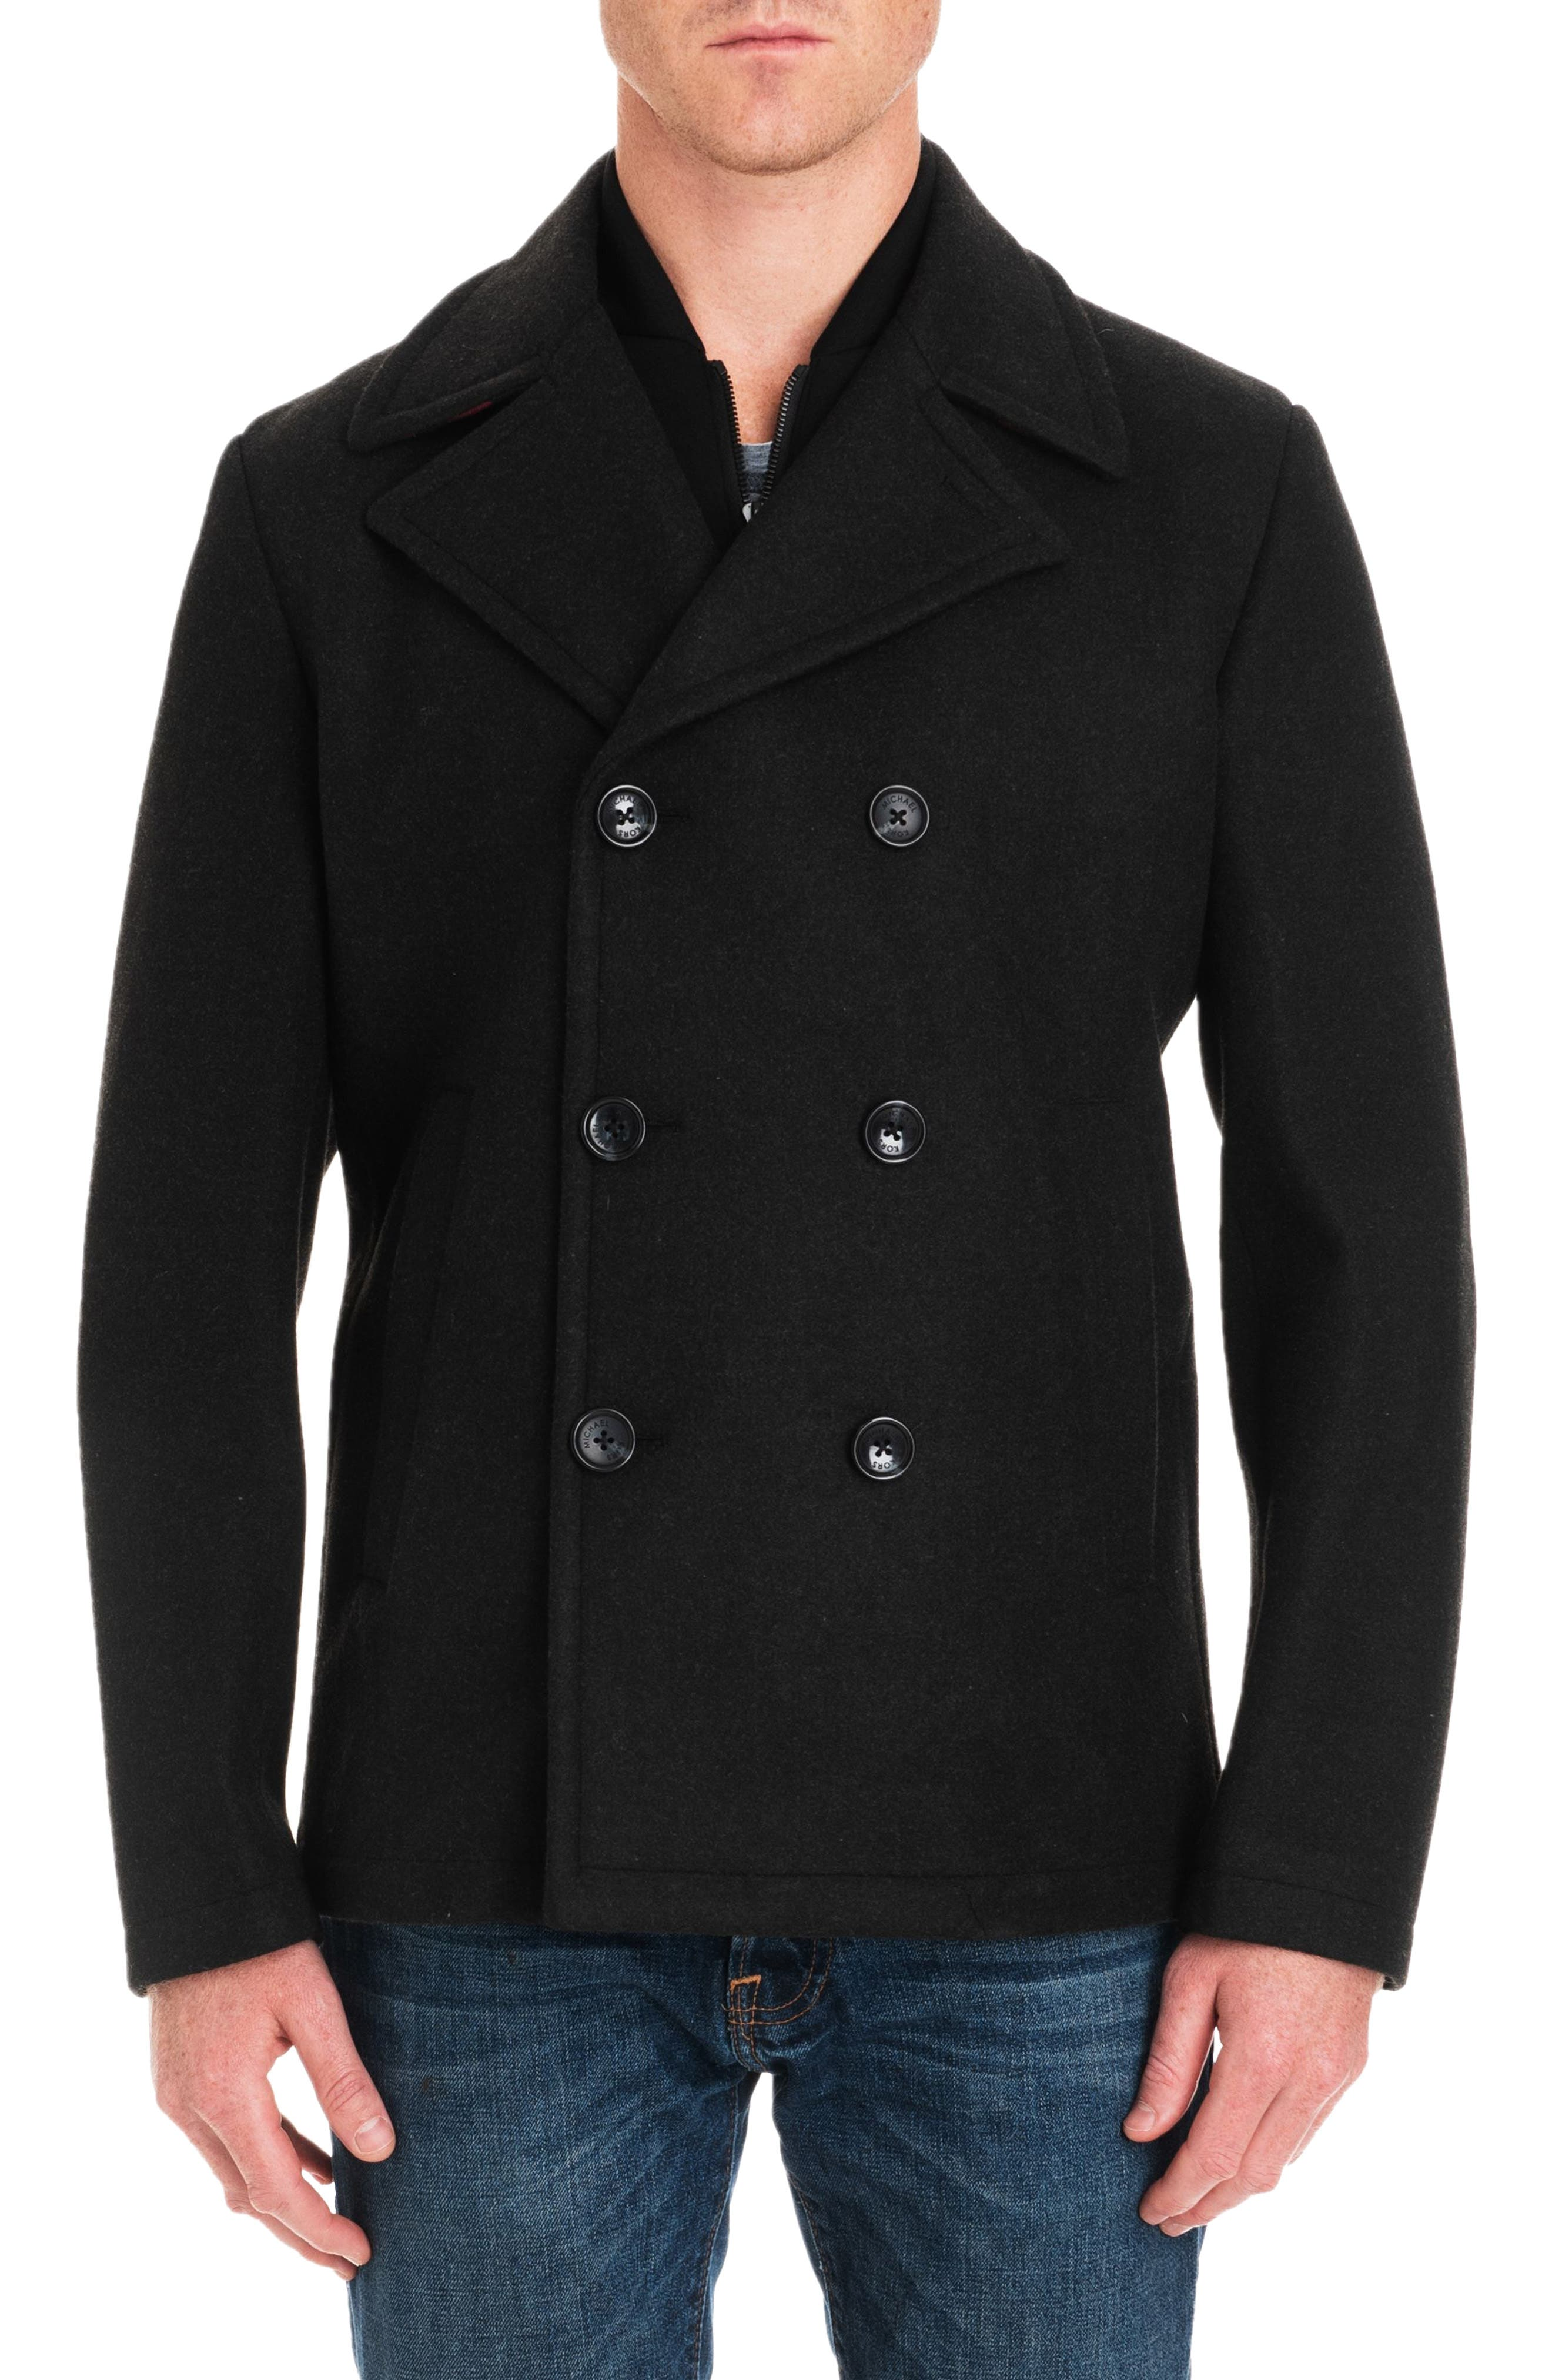 Seventh Street Peacoat,                         Main,                         color, LODEN HEATHER